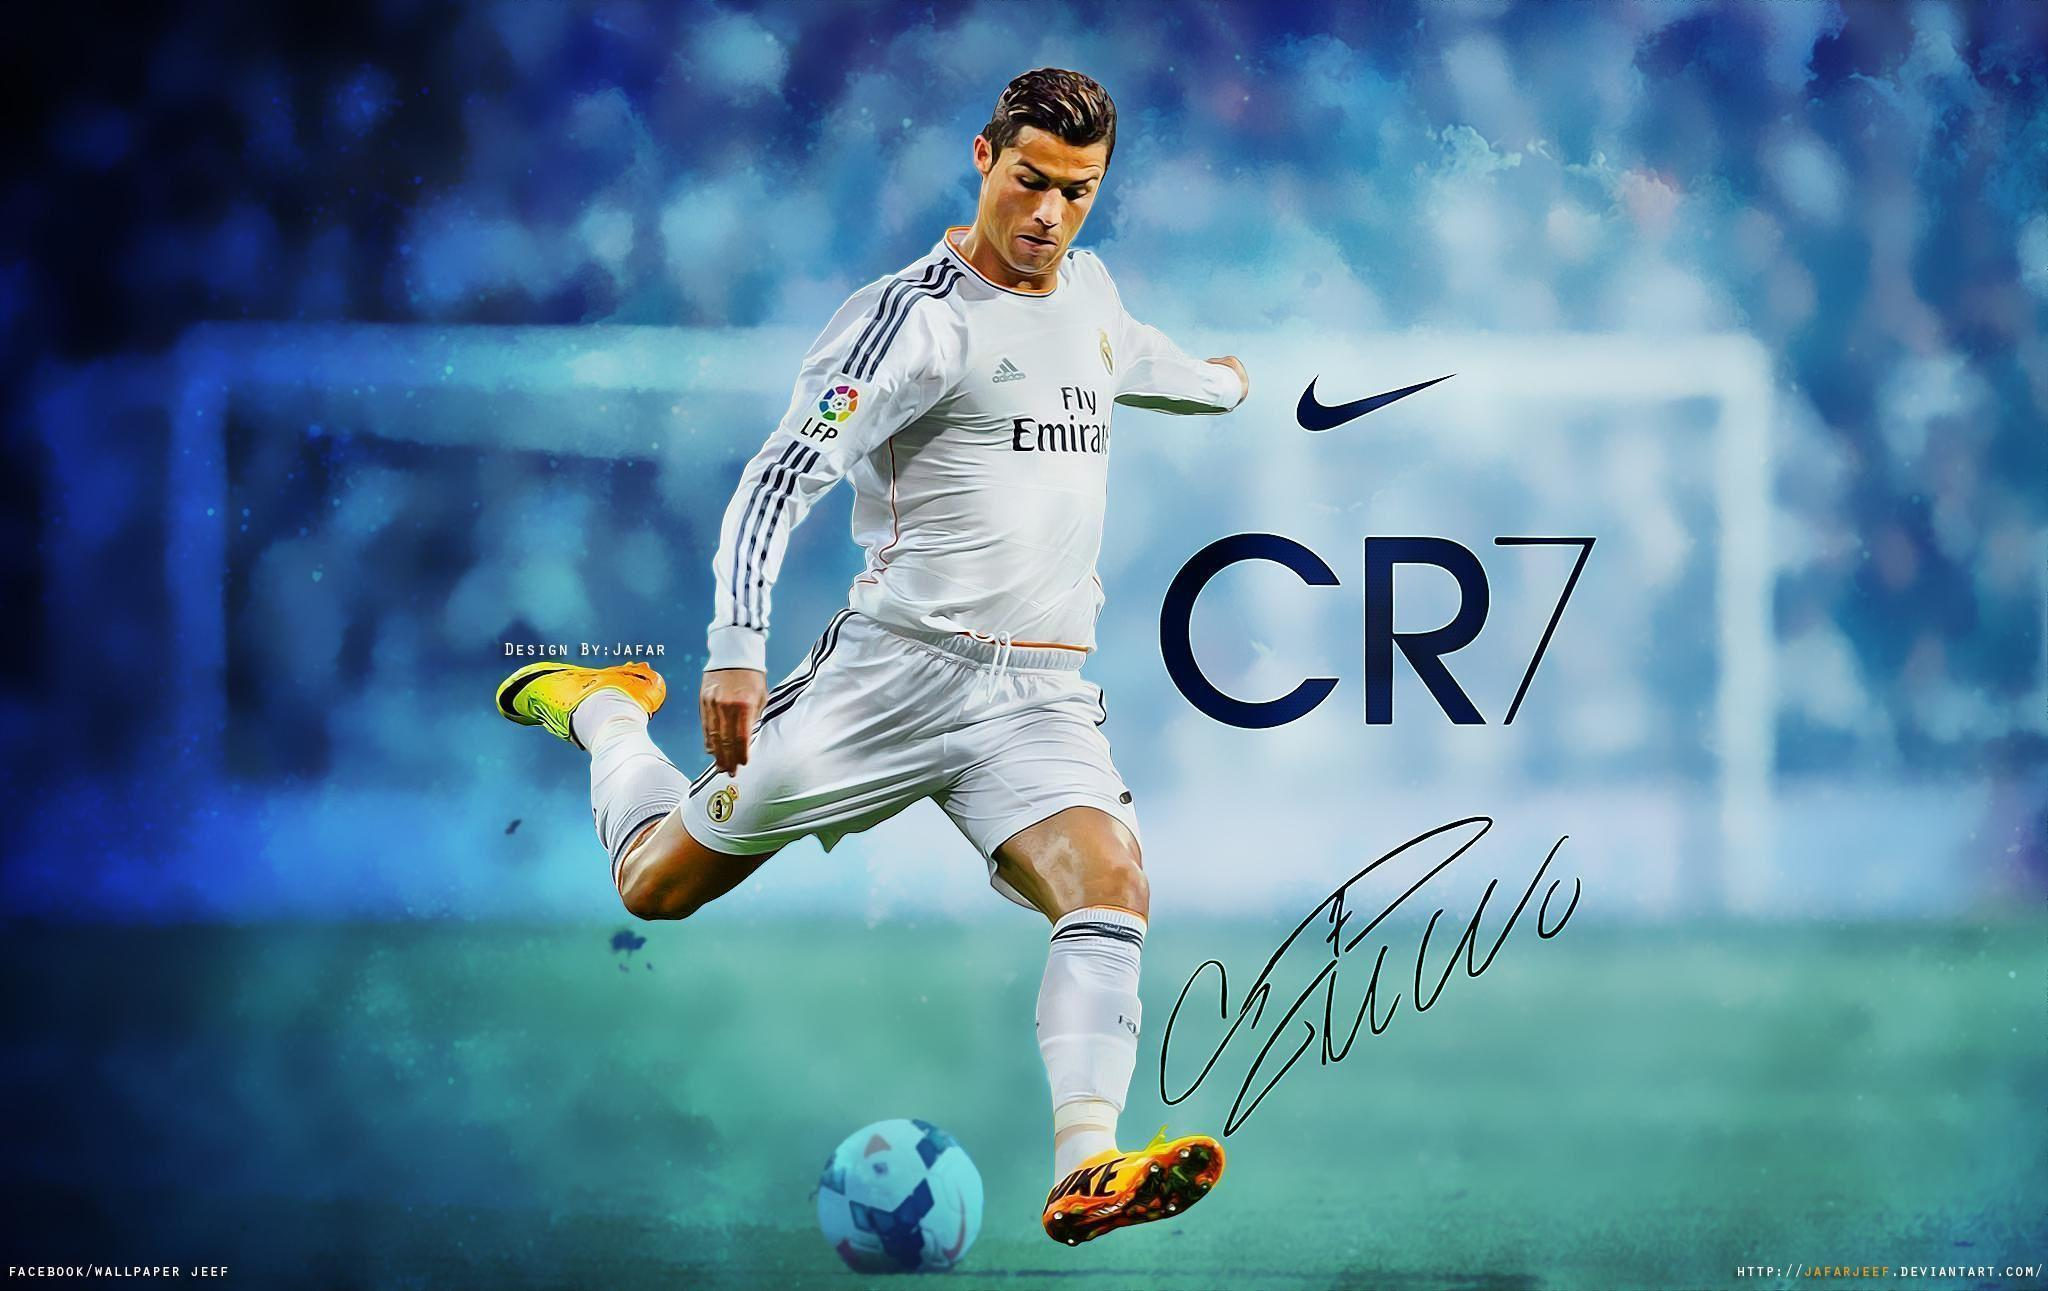 Cristiano ronaldo 7 wallpapers 2017 wallpaper cave for House wallpaper 2017